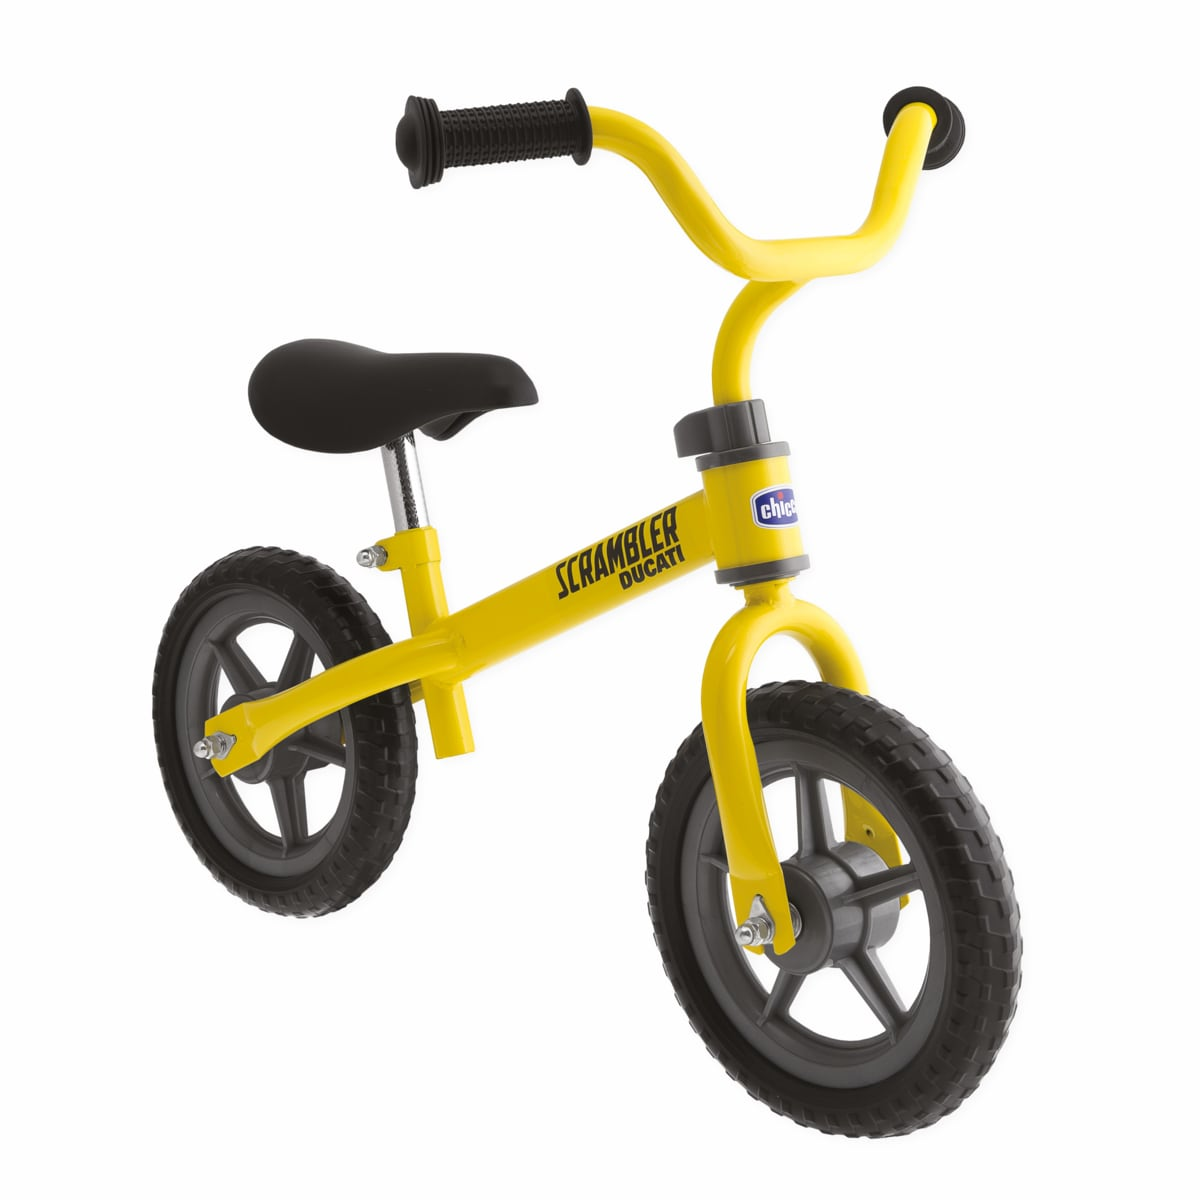 Scrambler Balance Bike Accessori Apparel Ducati